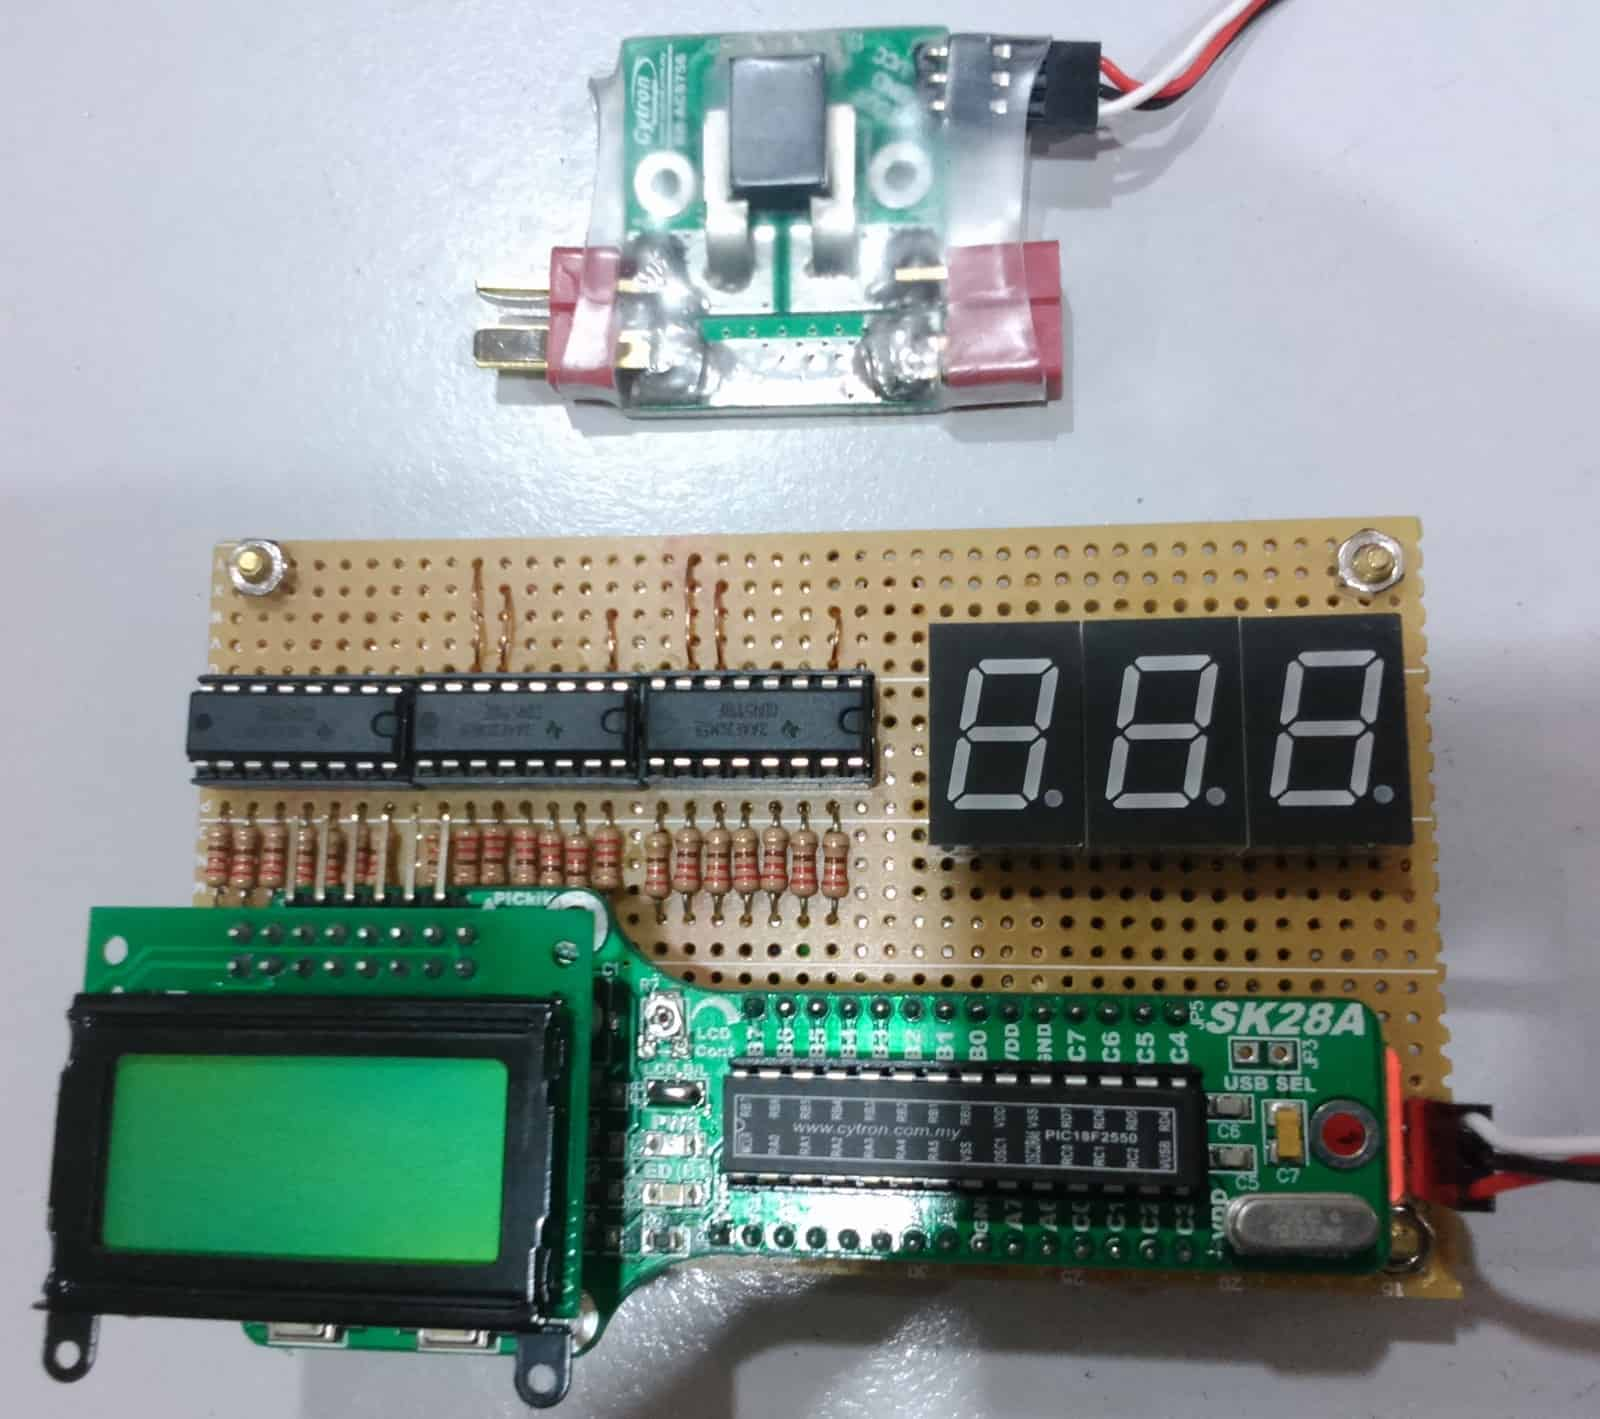 Lcd Interfacing With Pic Microcontrollers Part 4 Tutorial By Cytron Electronics O View Topic Hall Effect Switch And Led Brightness Ampmeter Using Sk28a 7 Segment Display